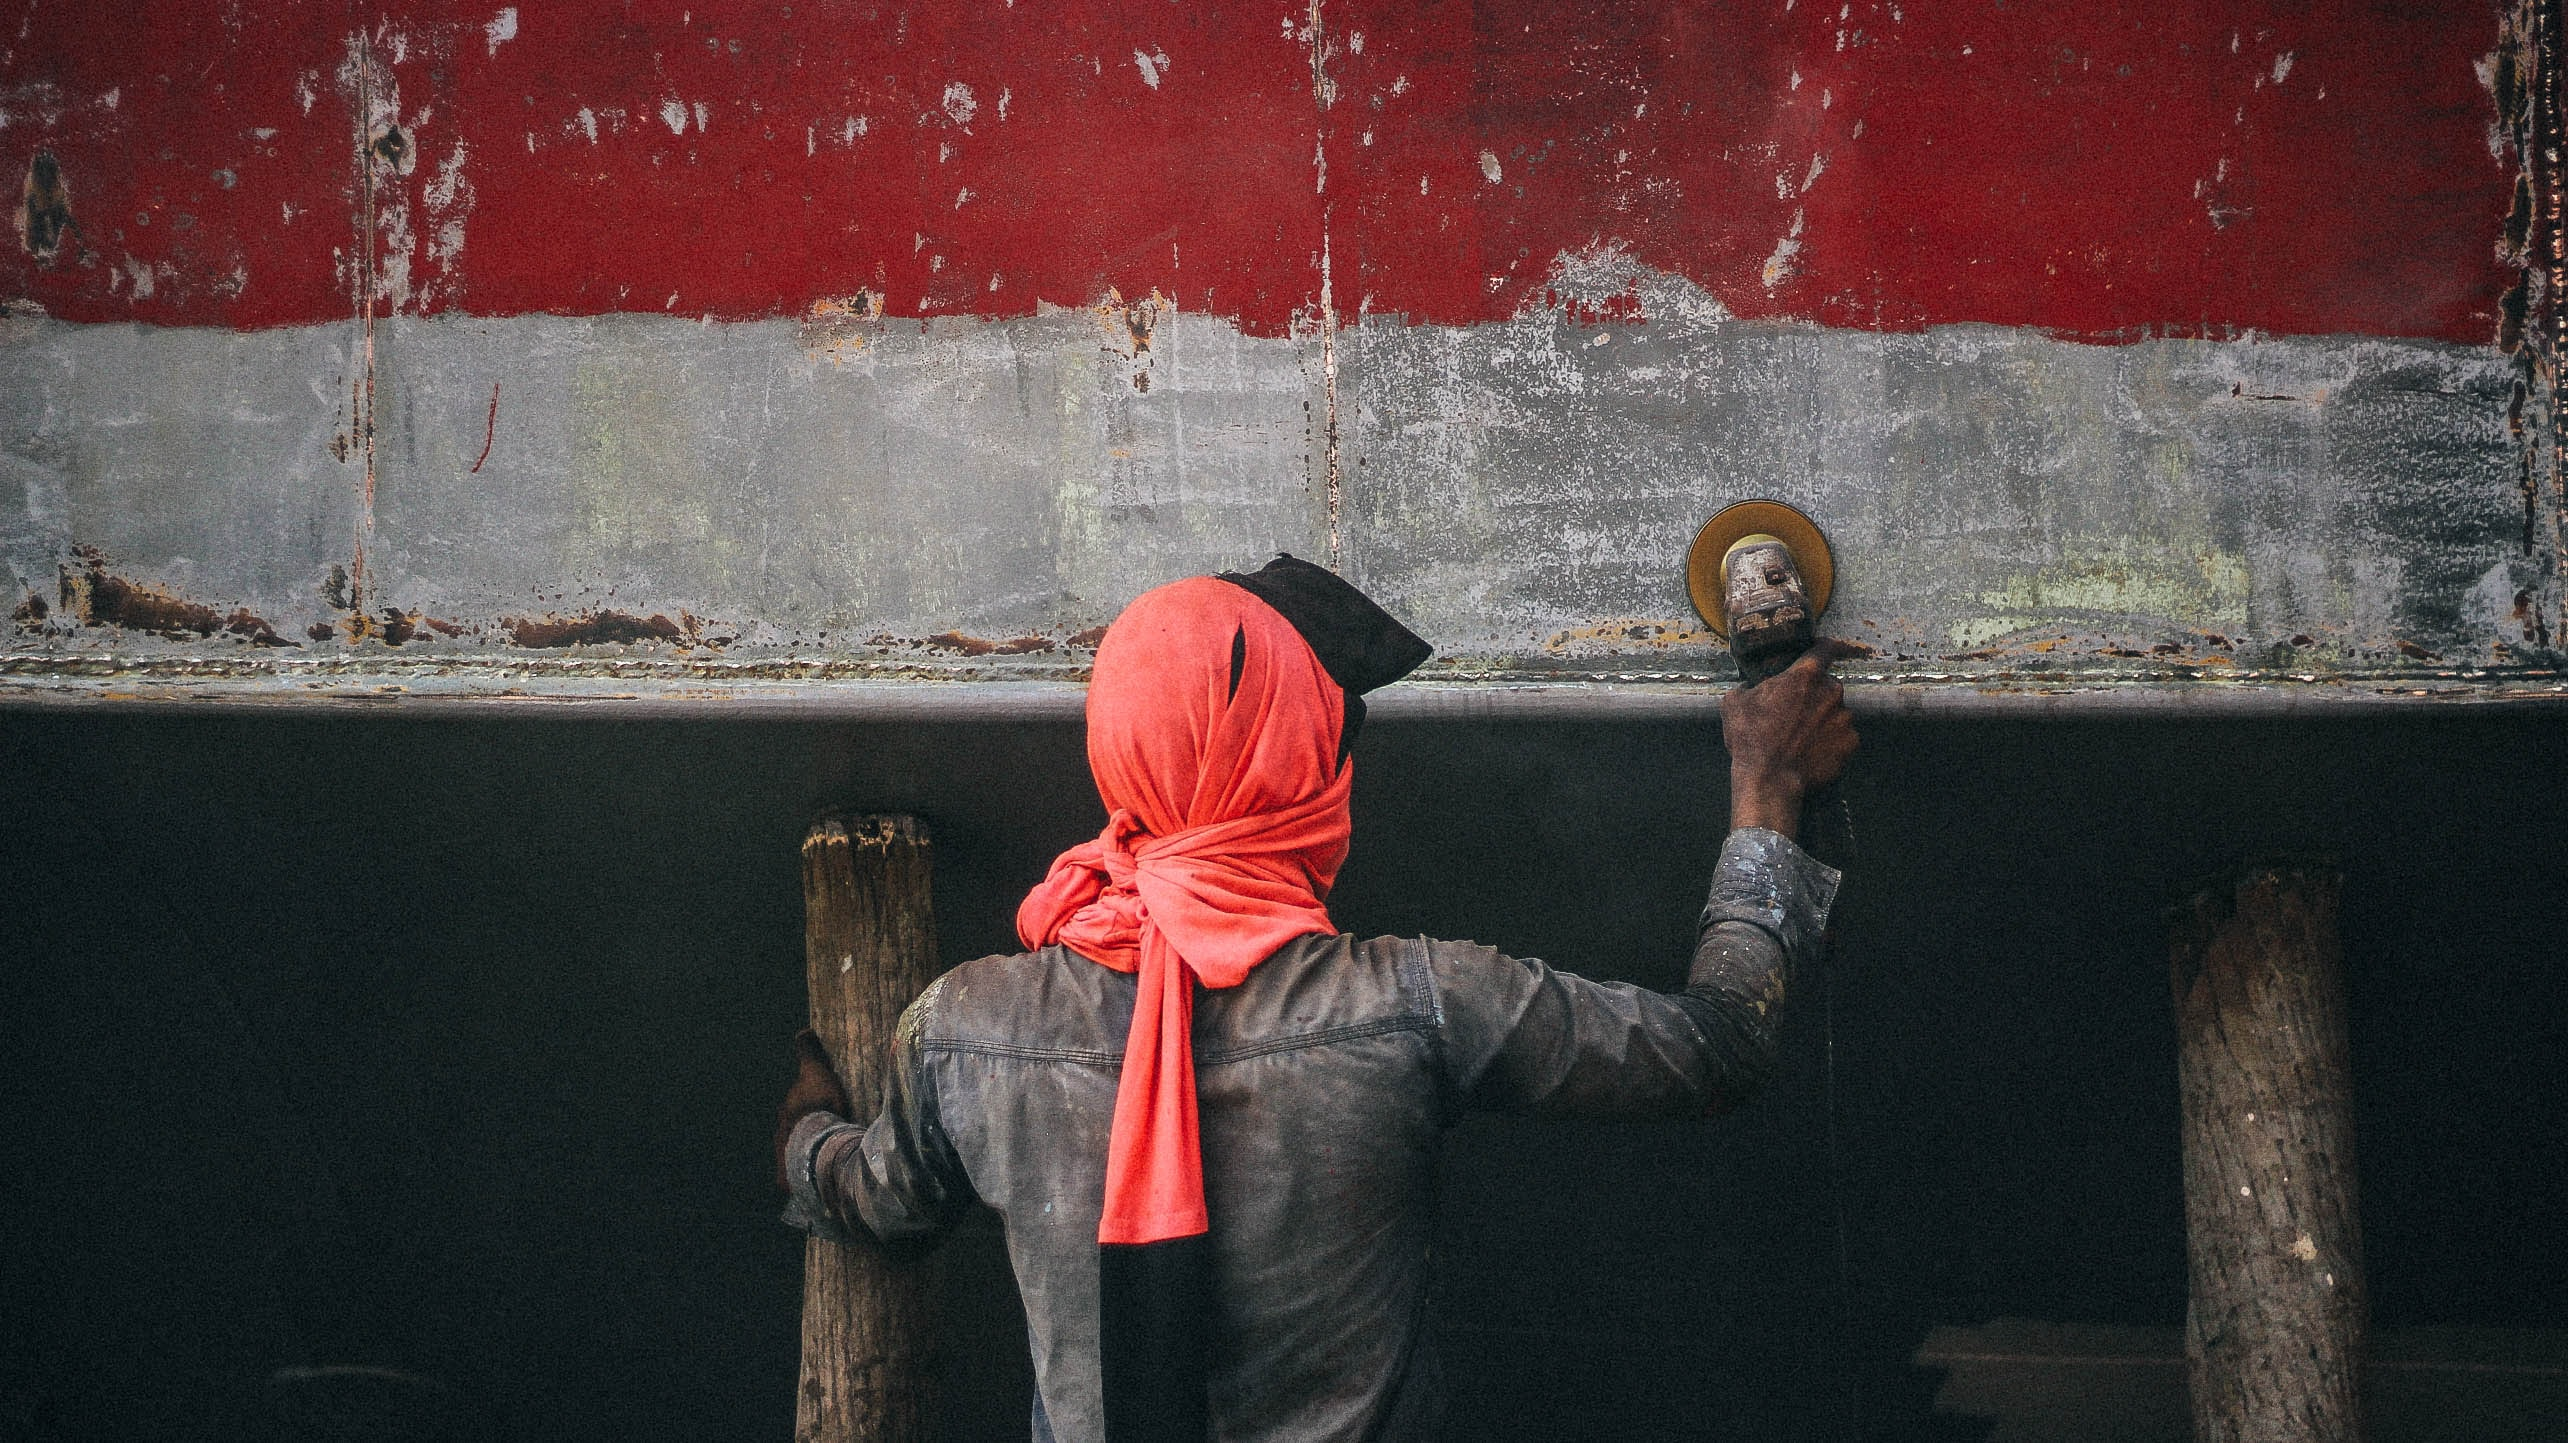 A person wearing a pink headscarf working on restoring a weathered boat